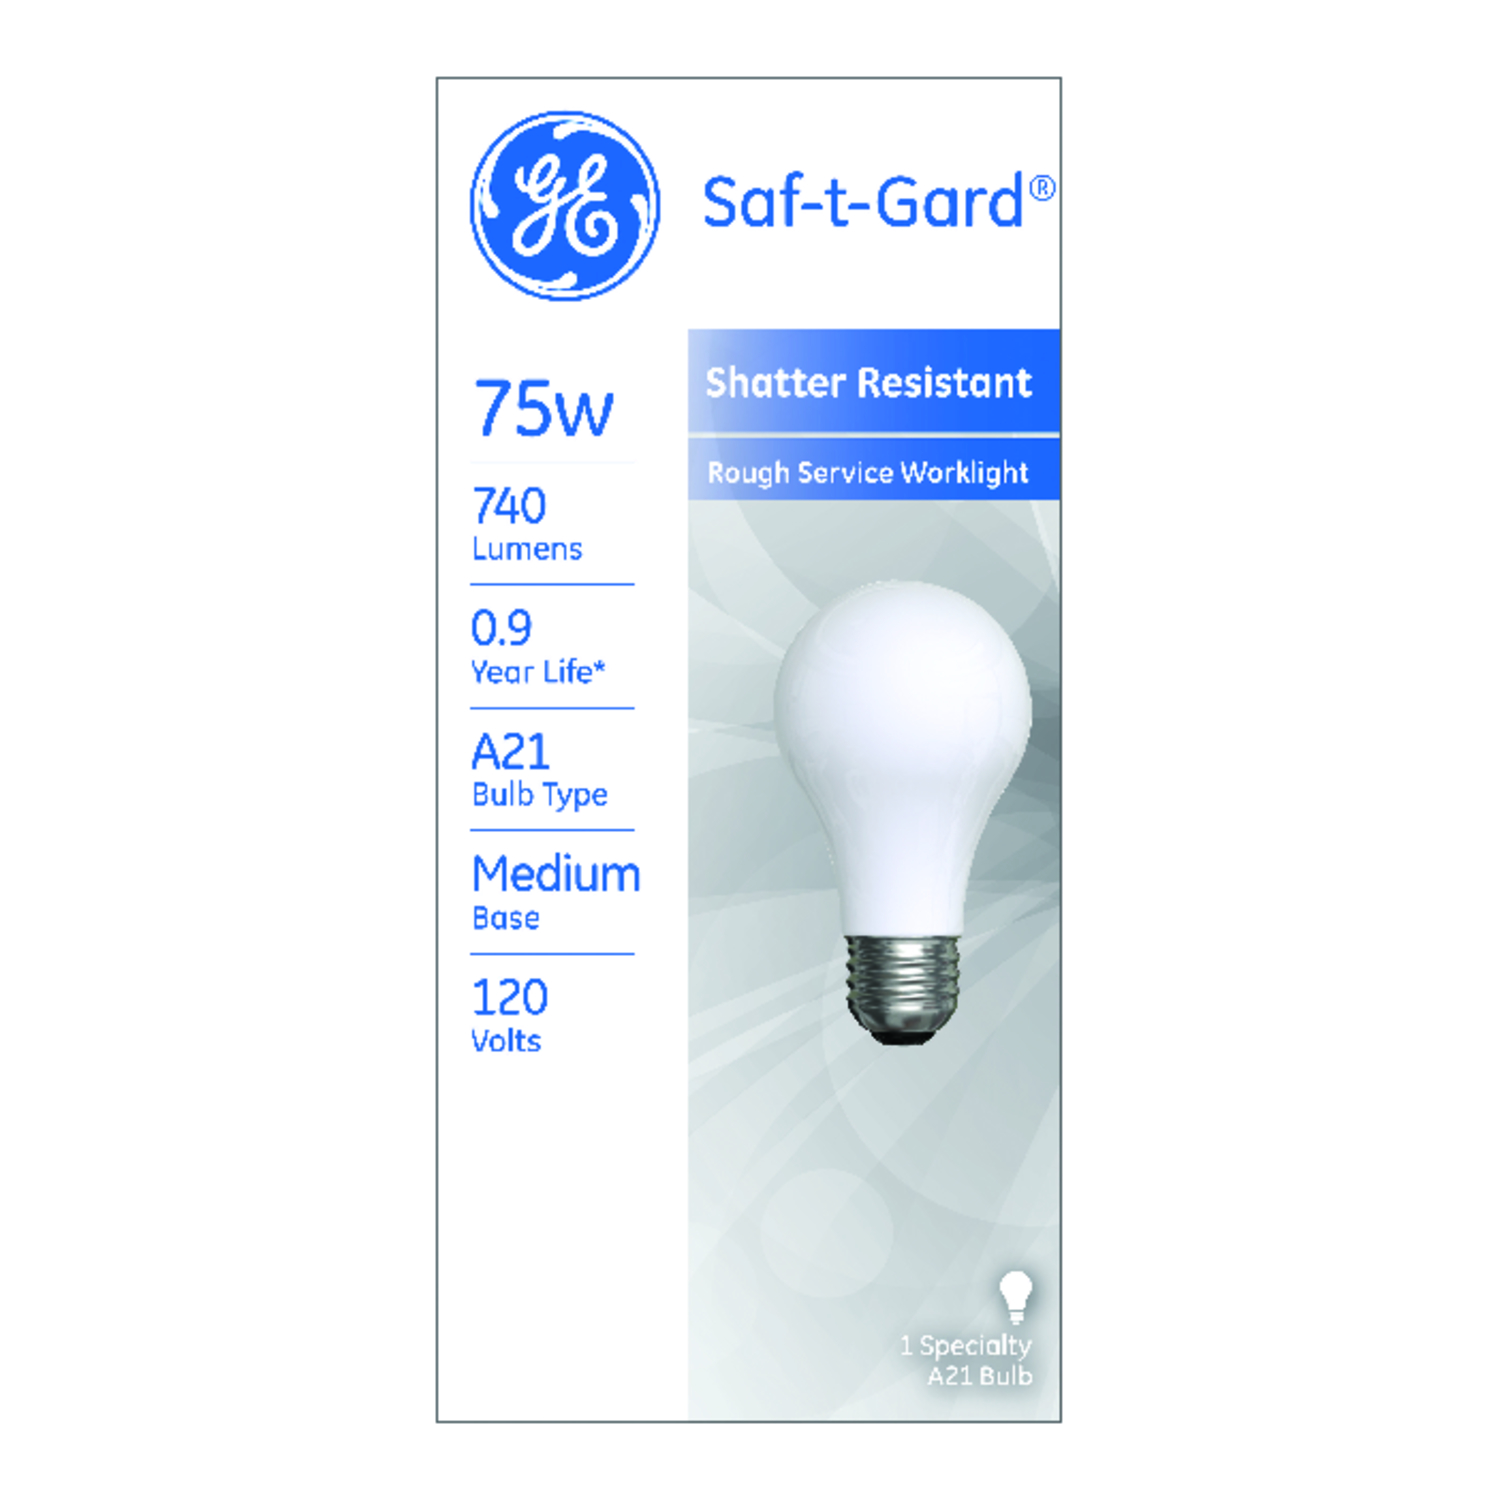 GE Lighting  Saf-T-Gard  75 watts A21  Incandescent Bulb  740 lumens White  A-Line  1 pk